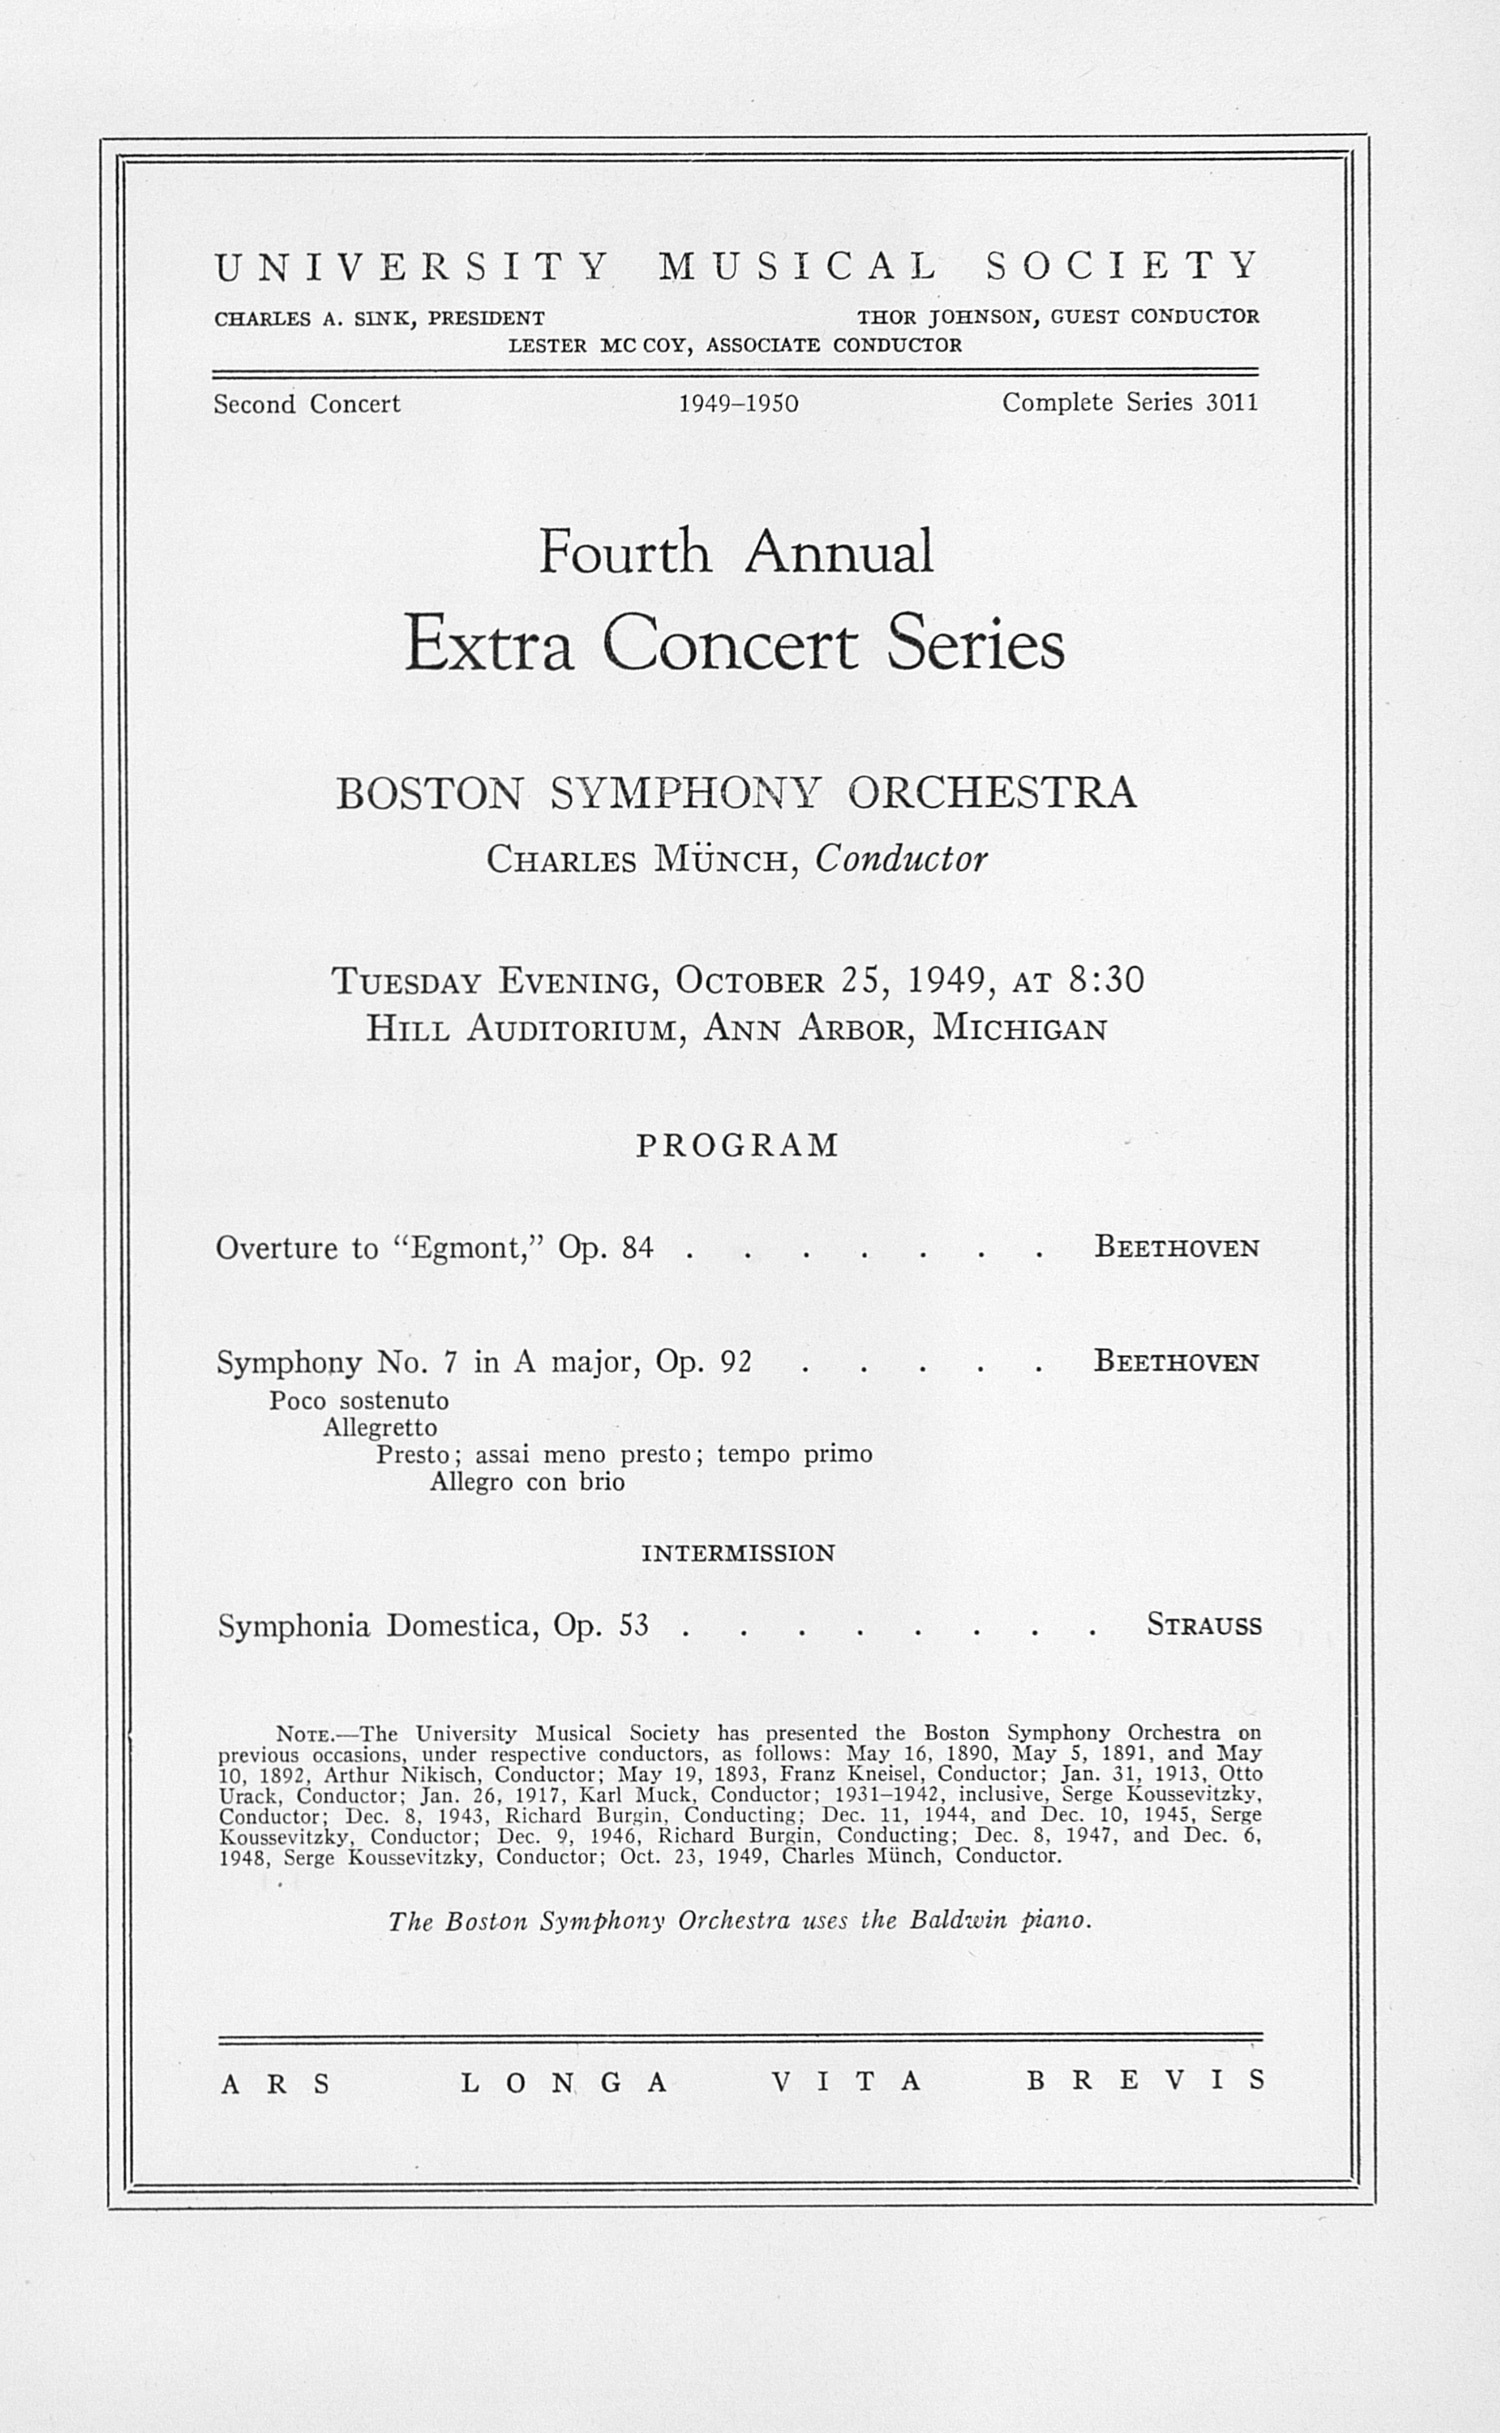 UMS Concert Program, October 25, 1949: Fourth Annual Extra Concert Series -- Boston Symphony Orchestra image